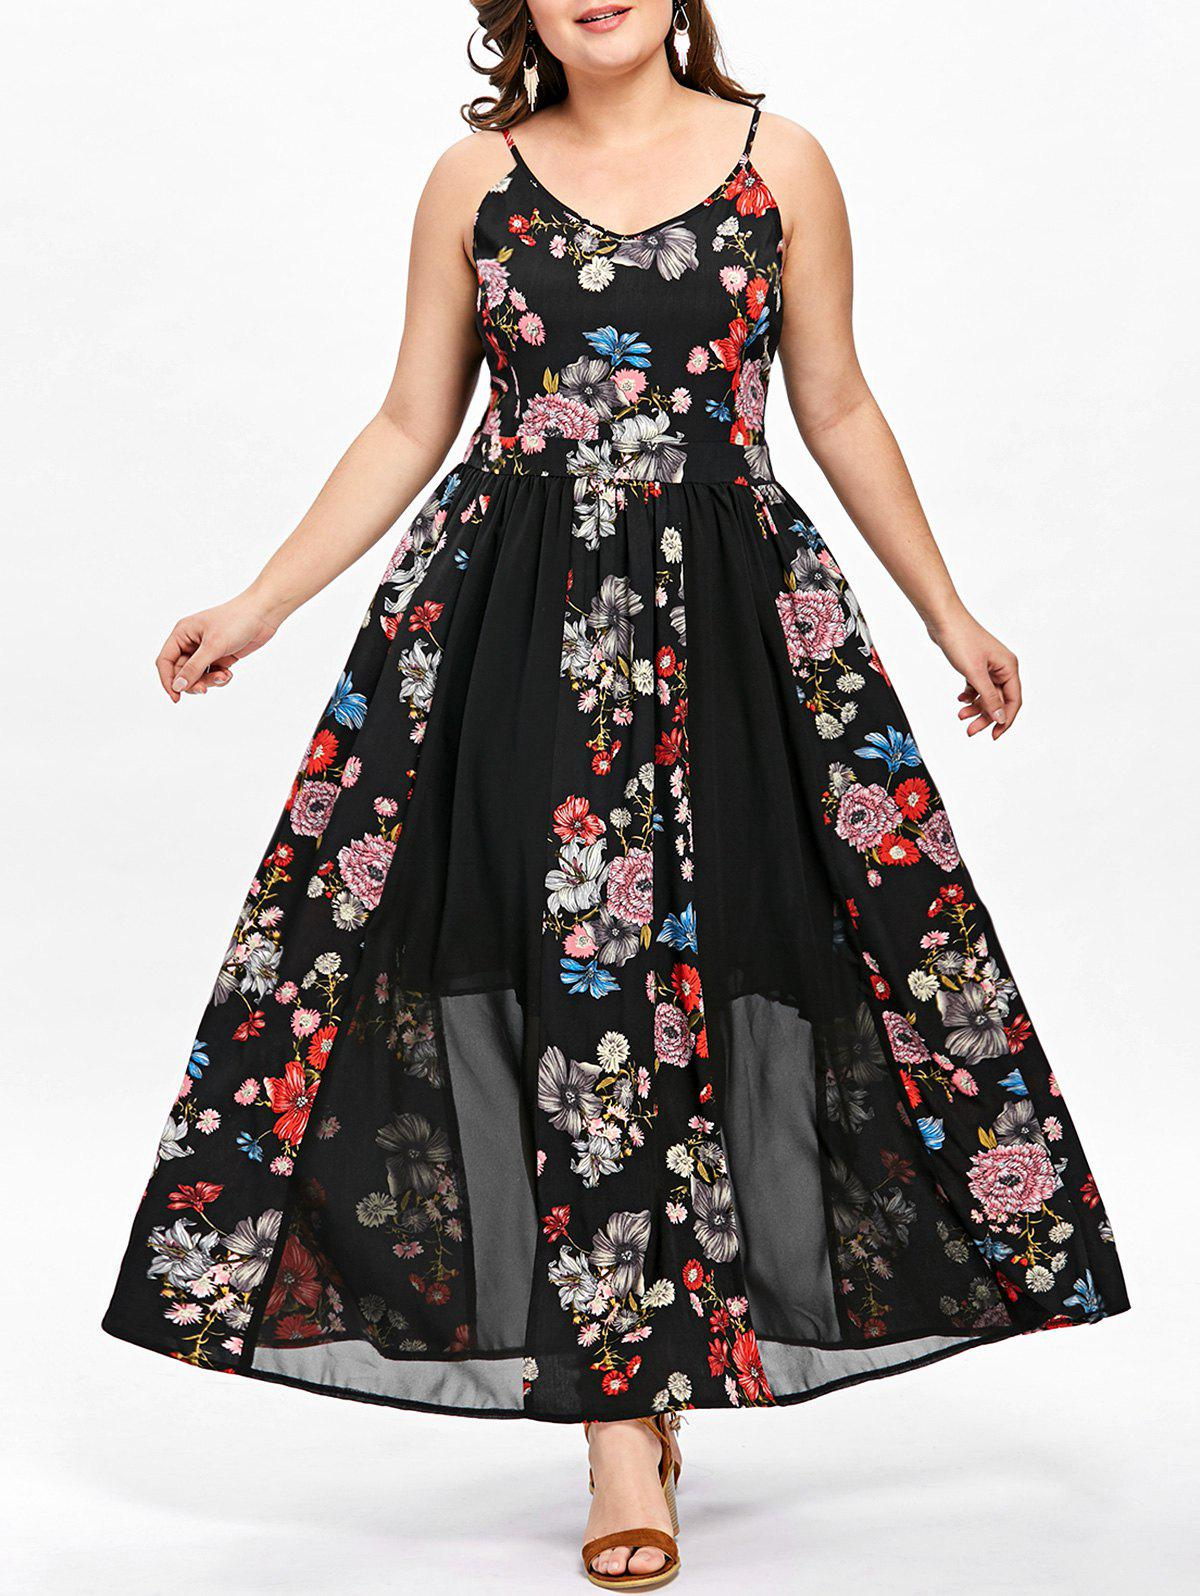 2019 Plus Size Bohemian Floral Flowing Slip Dress ...